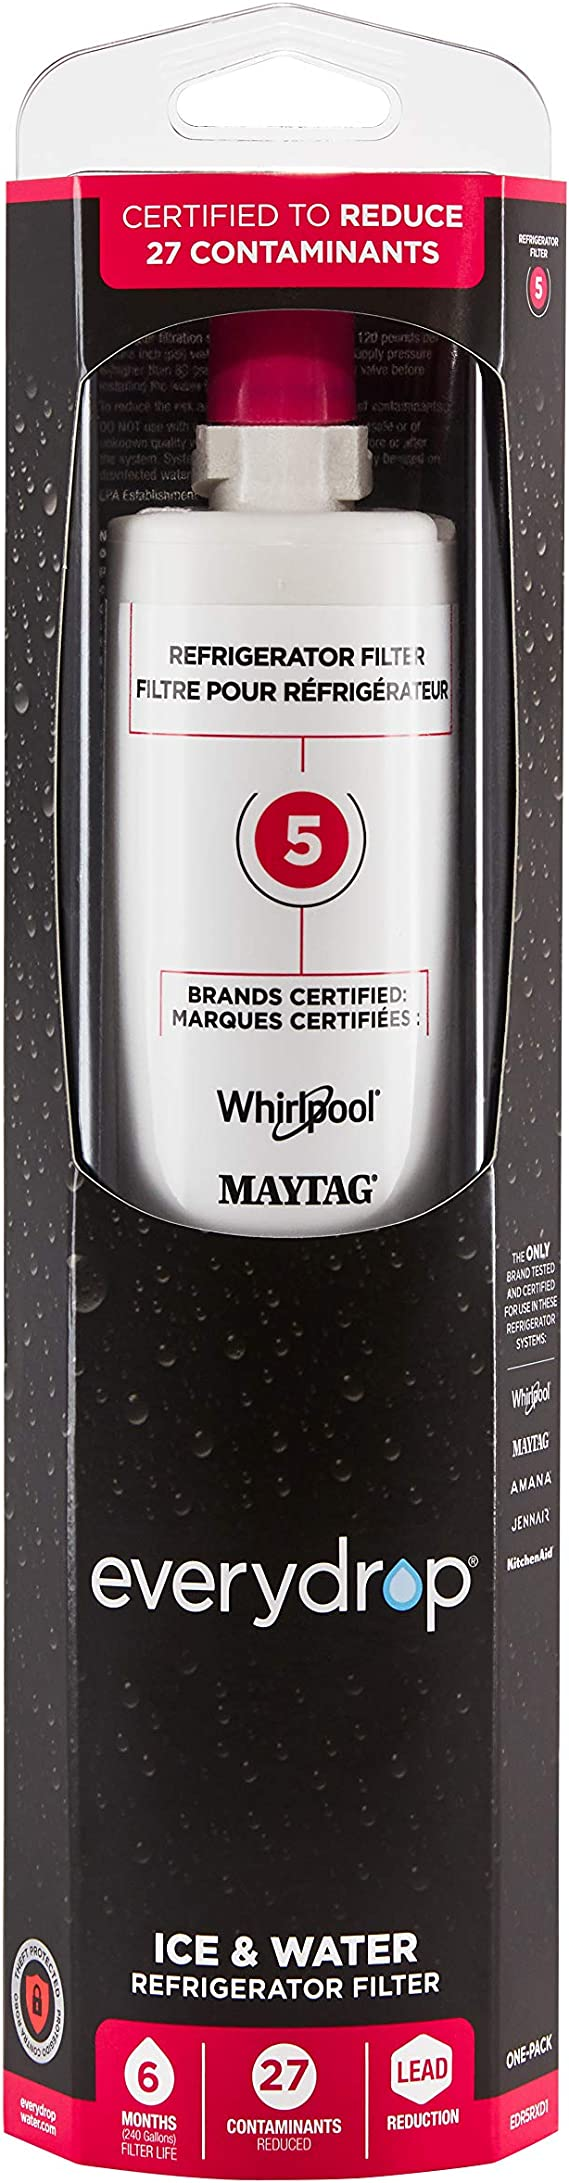 EveryDrop by Whirlpool EDR5RXD1 everydrop 5 Refrigerator Water Filter